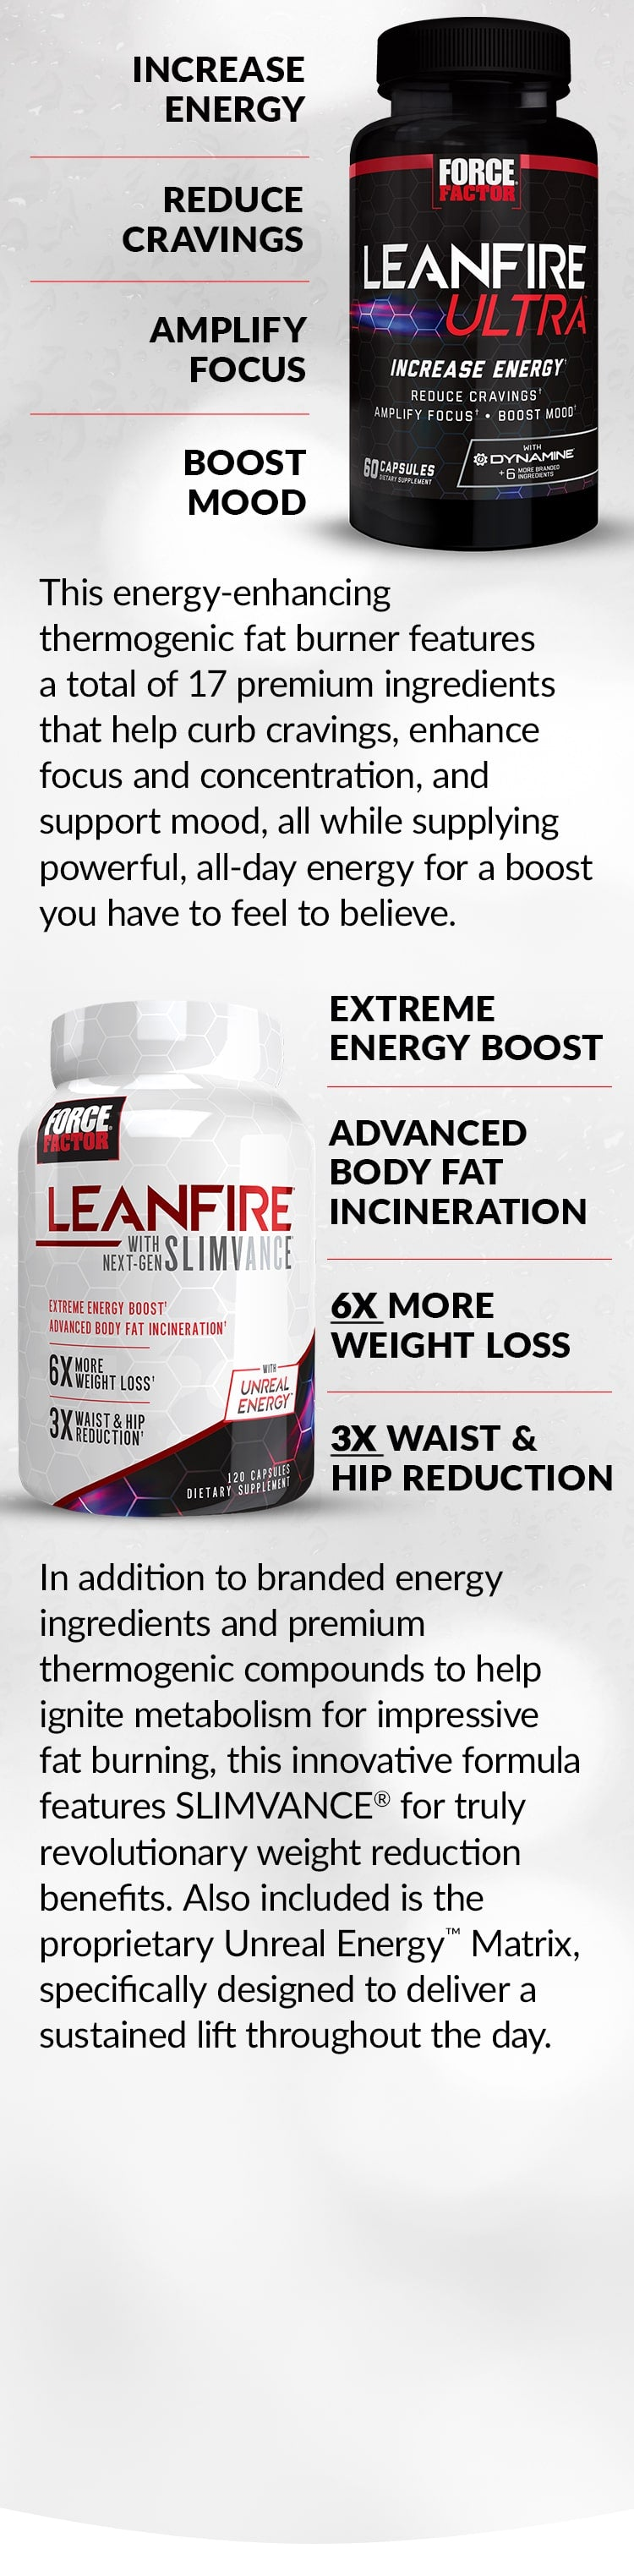 LeanFire Ultra® Increase Energy, Reduce Cravings, Amplify Focus, Boost Mood. This energy-enhancing thermogenic fat burner features a total of 17 premium ingredients that help curb cravings, enhance focus and concentration, and support mood, all while supplying powerful, all-day energy for a boost you have to feel to believe. LeanFire with Next-Gen SLIMVANCE® - Extreme Energy Boost, Advanced Body Fat Incineration, 6X MORE WEIGHT LOSS, 3X WAIST & HIP REDUCTION. In addition to branded energy ingredients and premium thermogenic compounds to help ignite metabolism for impressive fat burning, this innovative formula features SLIMVANCE® for truly revolutionary weight reduction benefits. Also included is the proprietary Unreal Energy™ Matrix, specifically designed to deliver a sustained lift throughout the day.